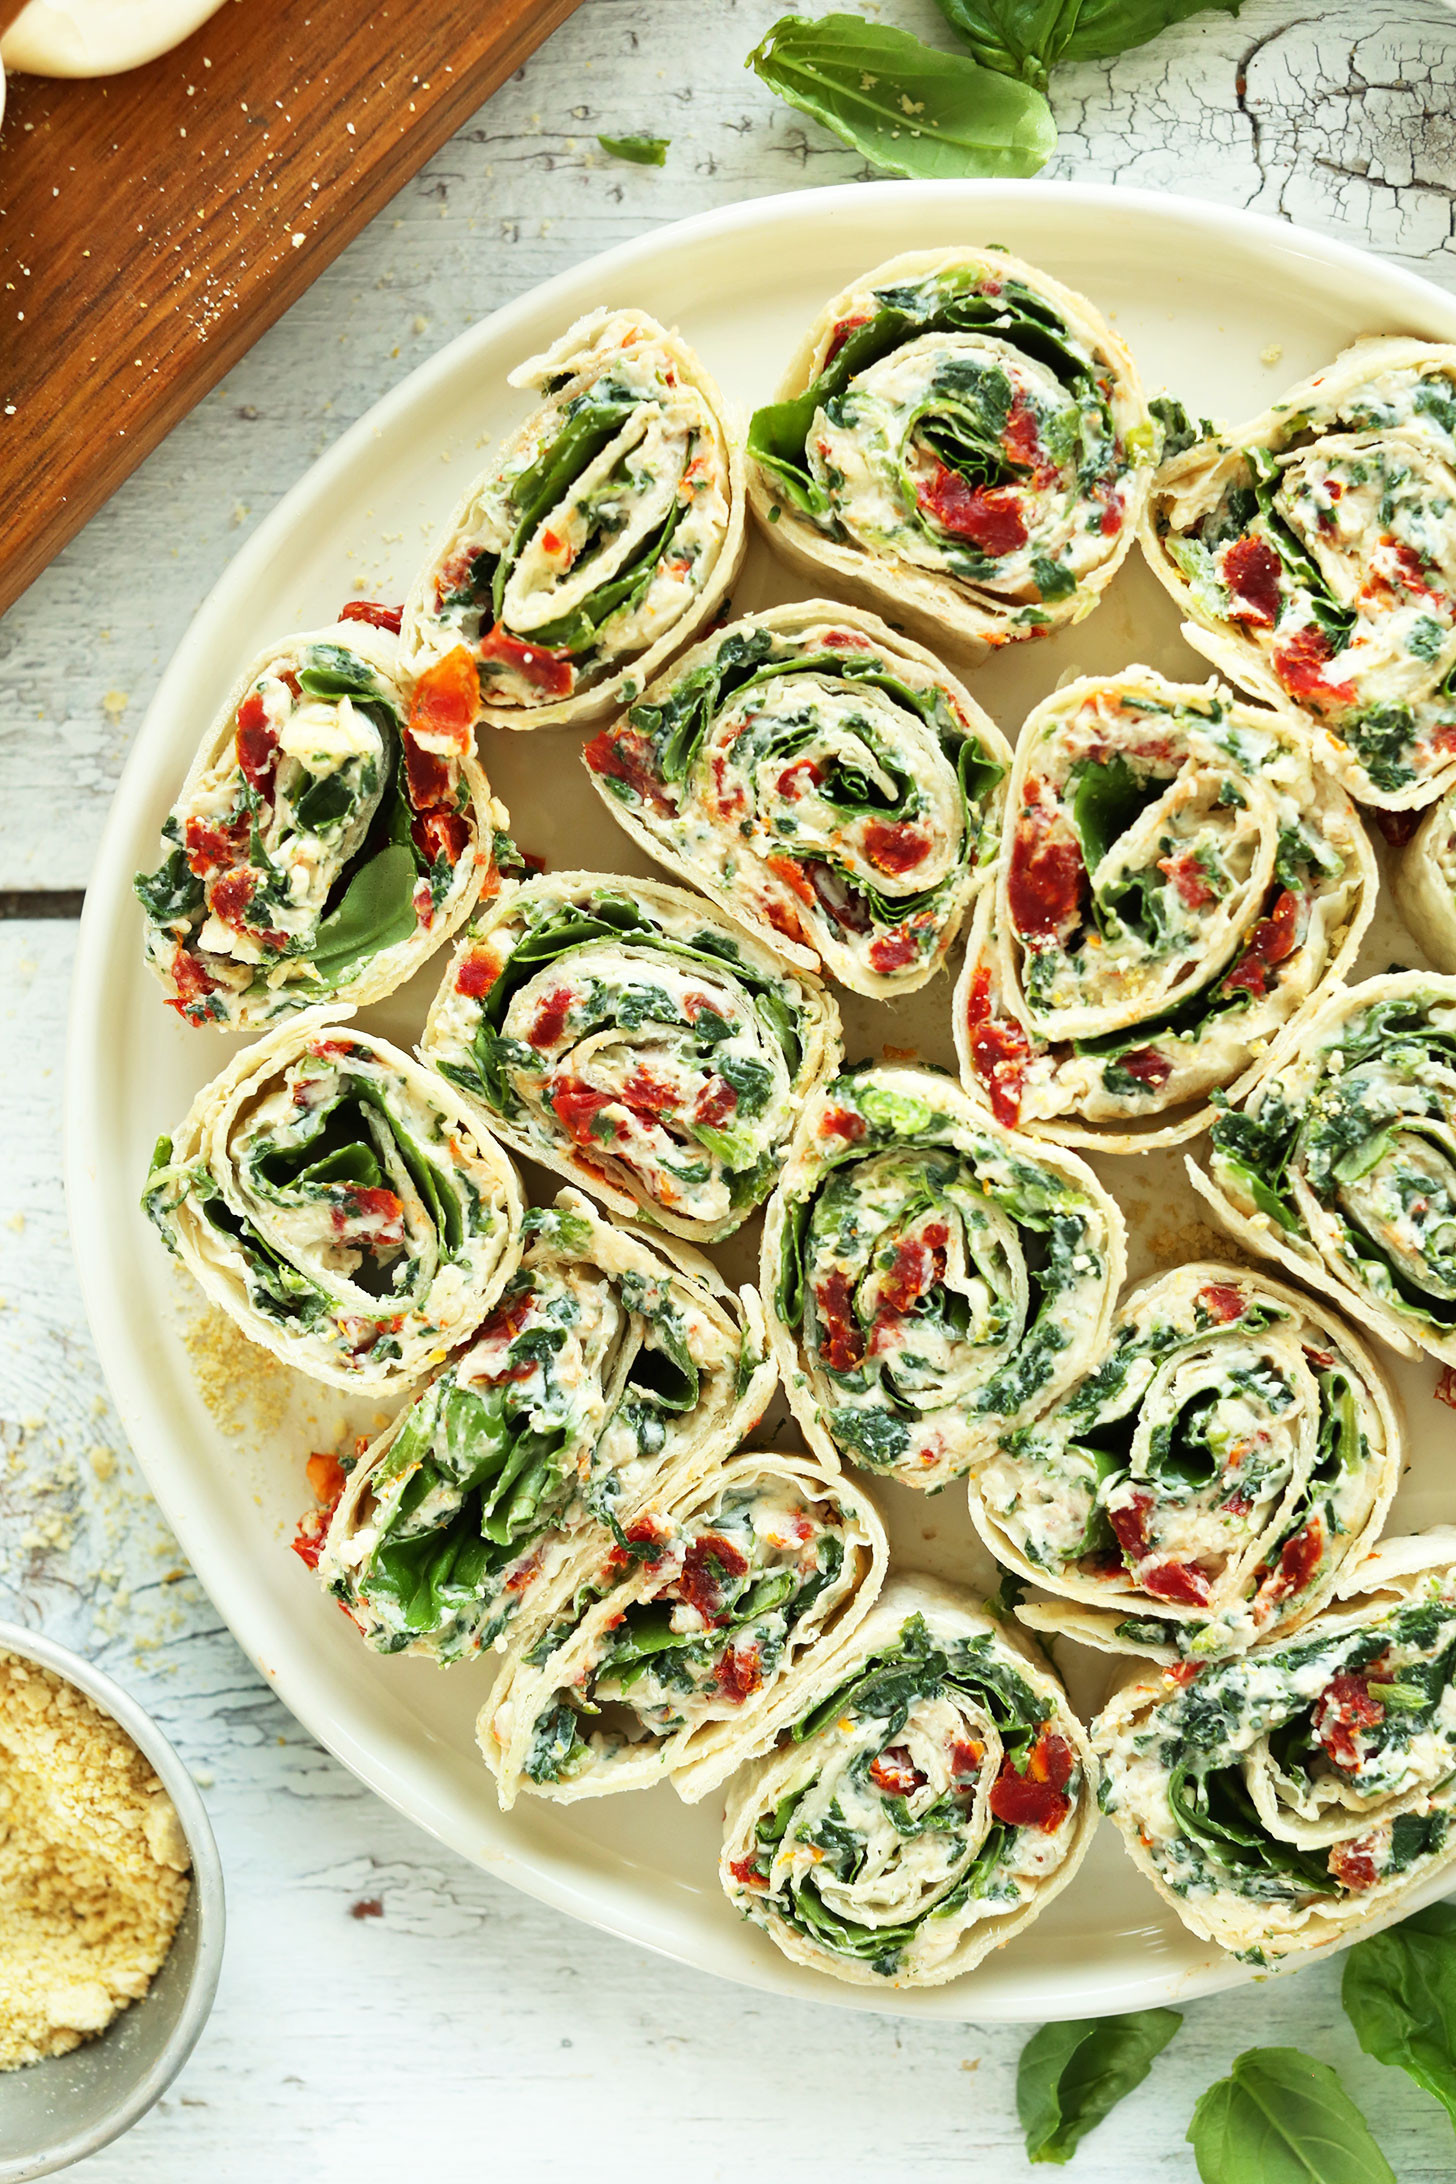 Appetizers For Potluck  Healthy Summer Potluck Recipes The District Table